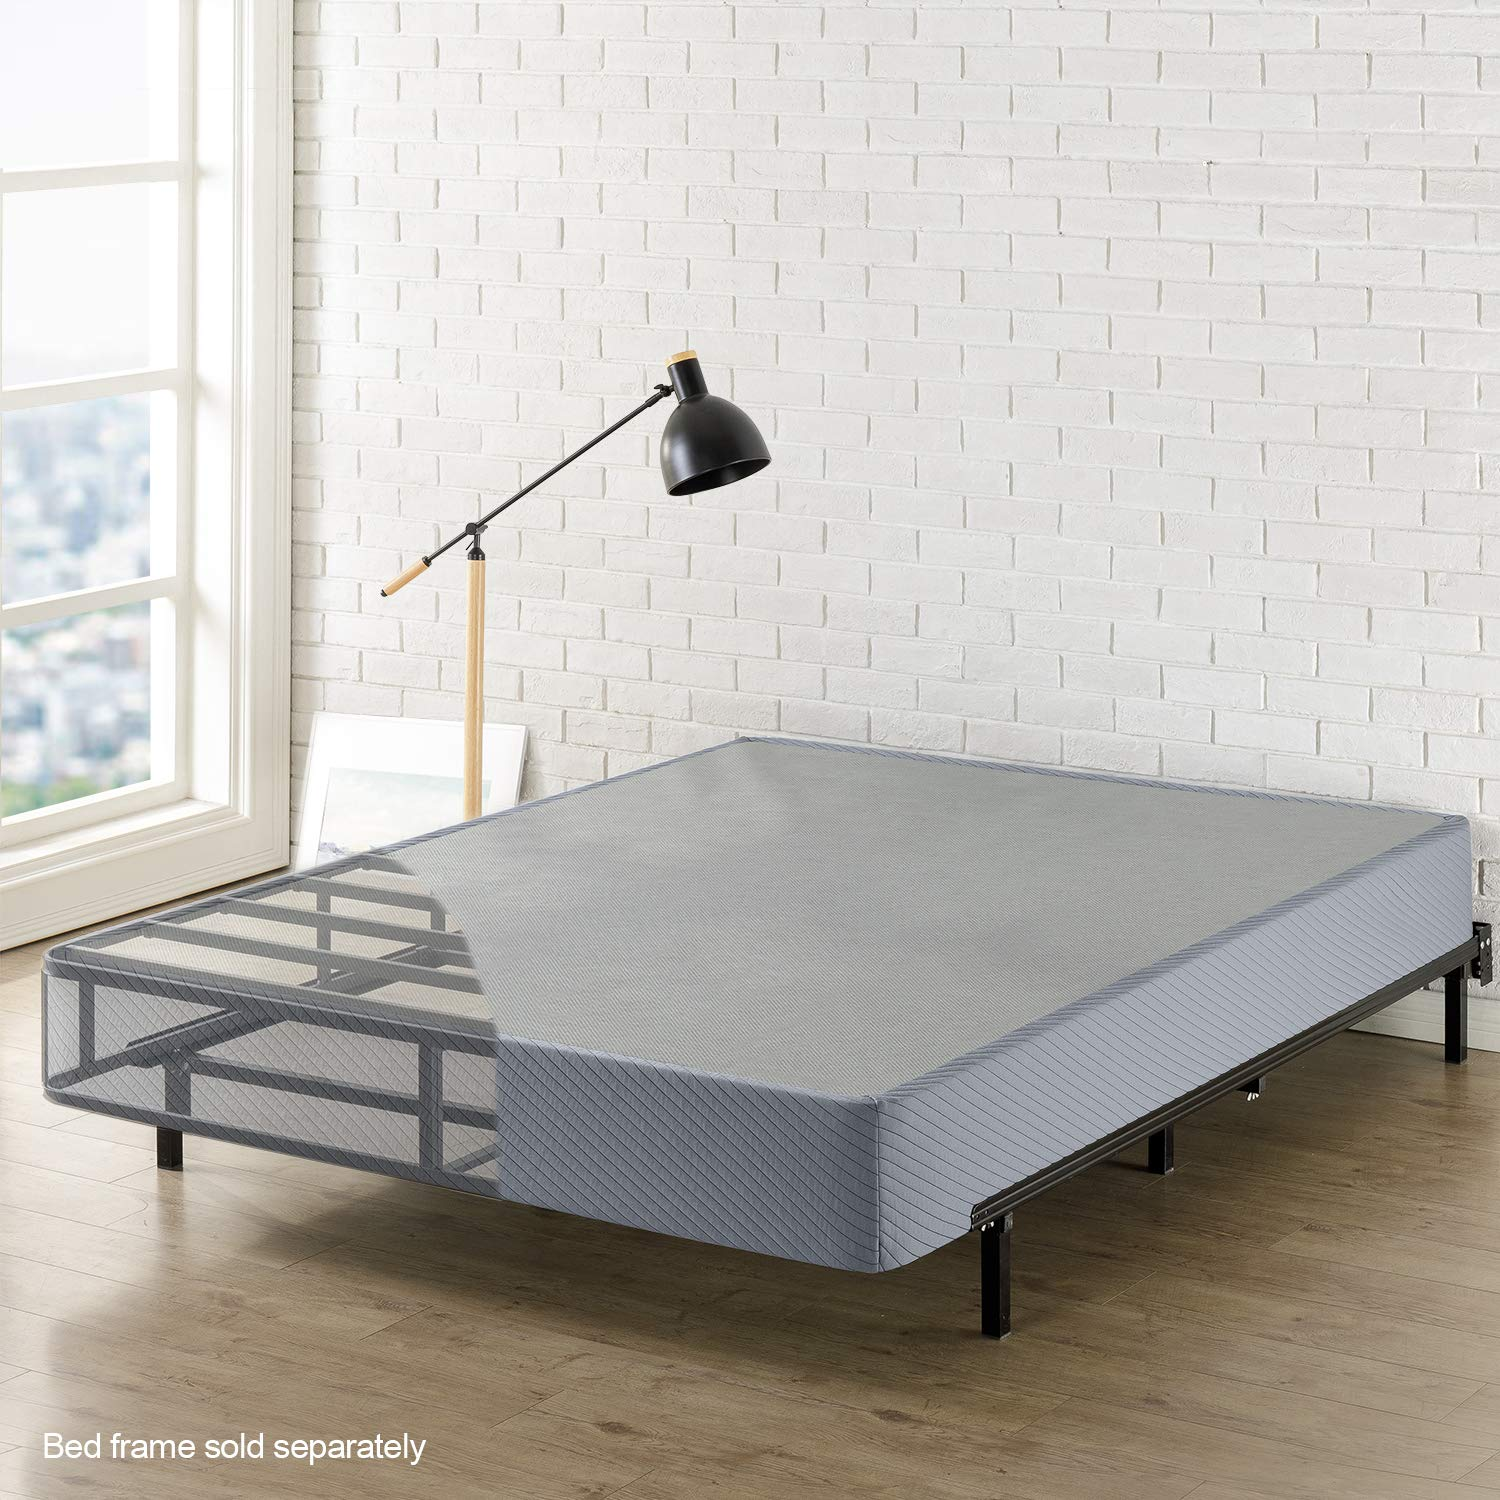 Best Price Mattress Twin Box Spring 9'' High Profile with Heavy Duty Steel Slat Mattress Foundation Fits Standard Bed Frame Gray